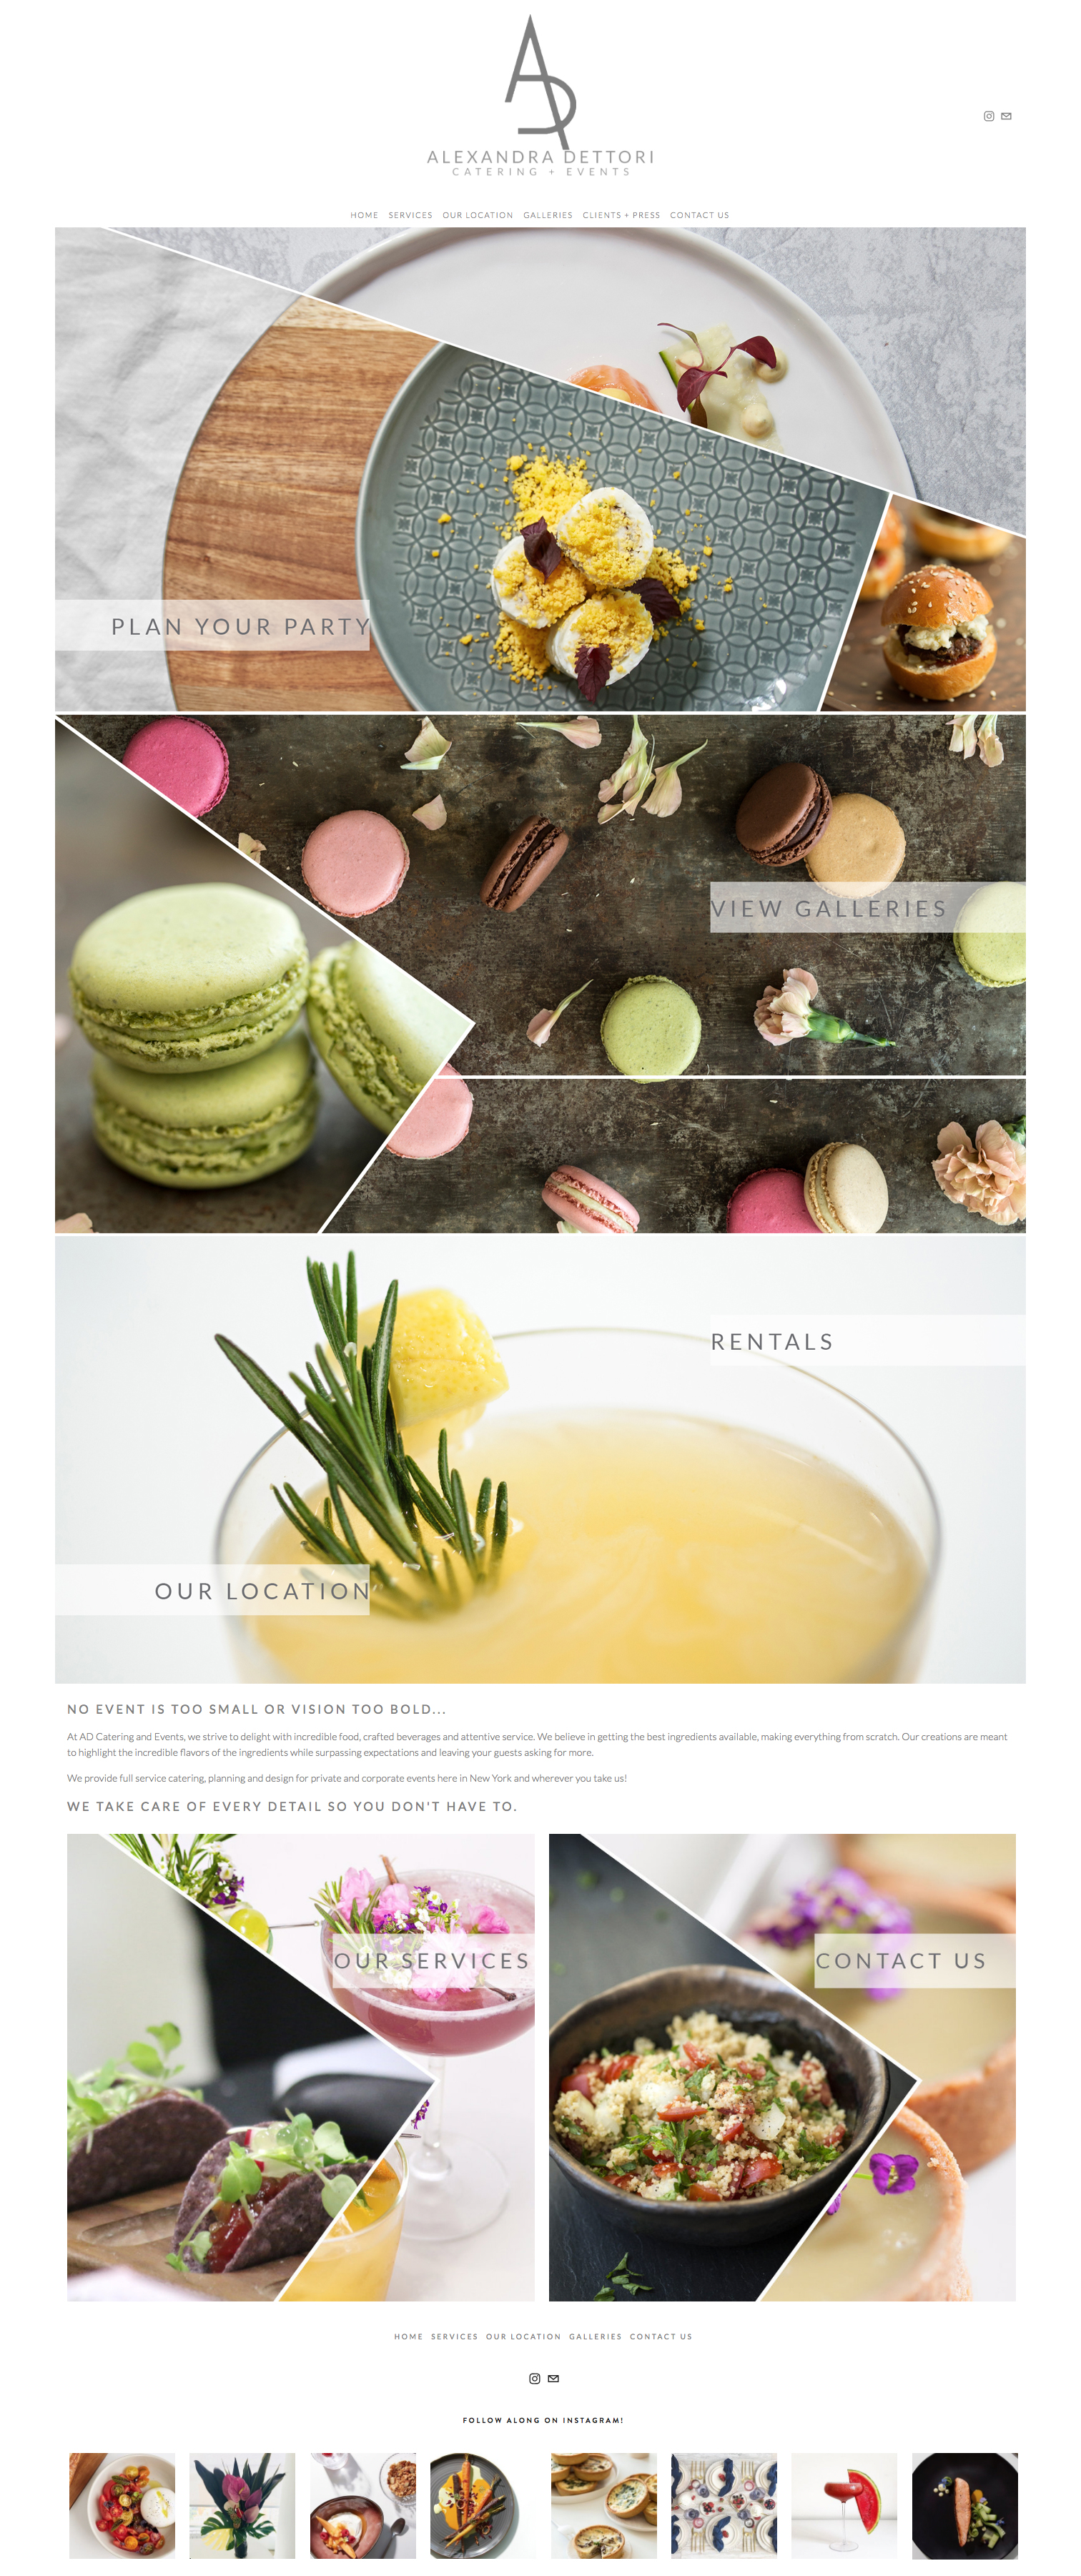 Squarespace Website Designer For Catering Companies | Event Professionals Industry Creative | The Editor's Touch